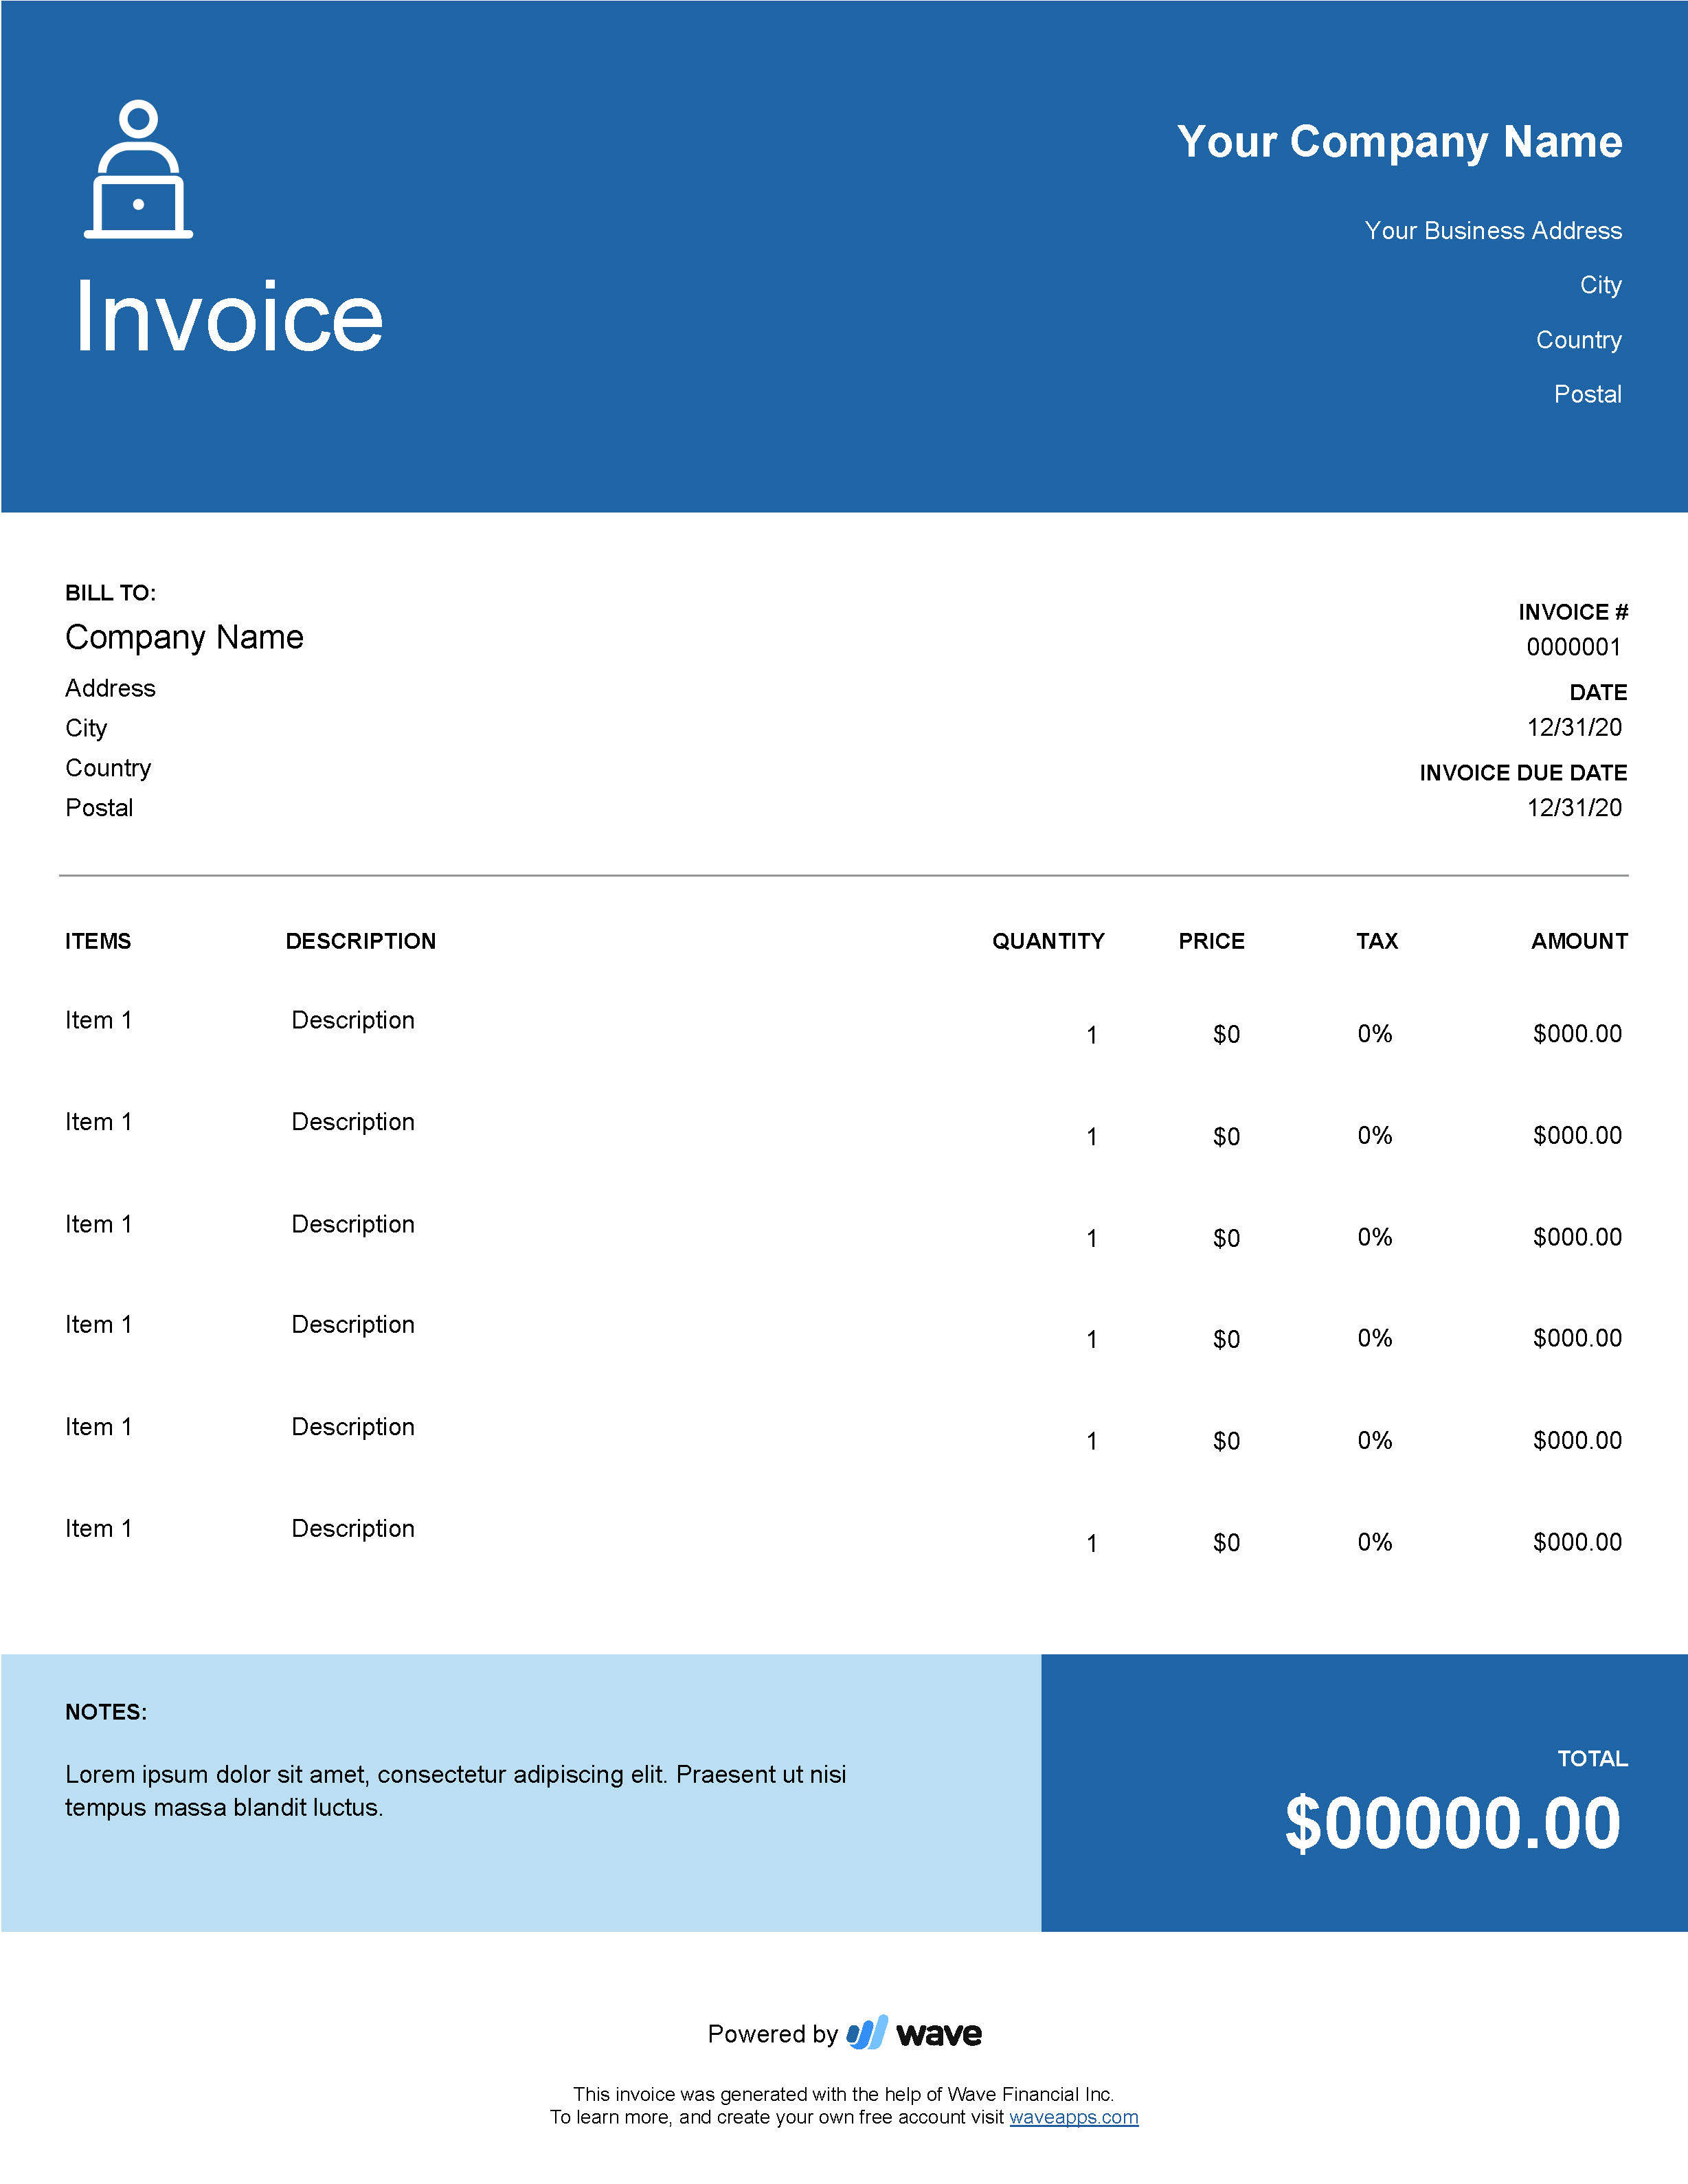 Templates For Receipts And Invoices